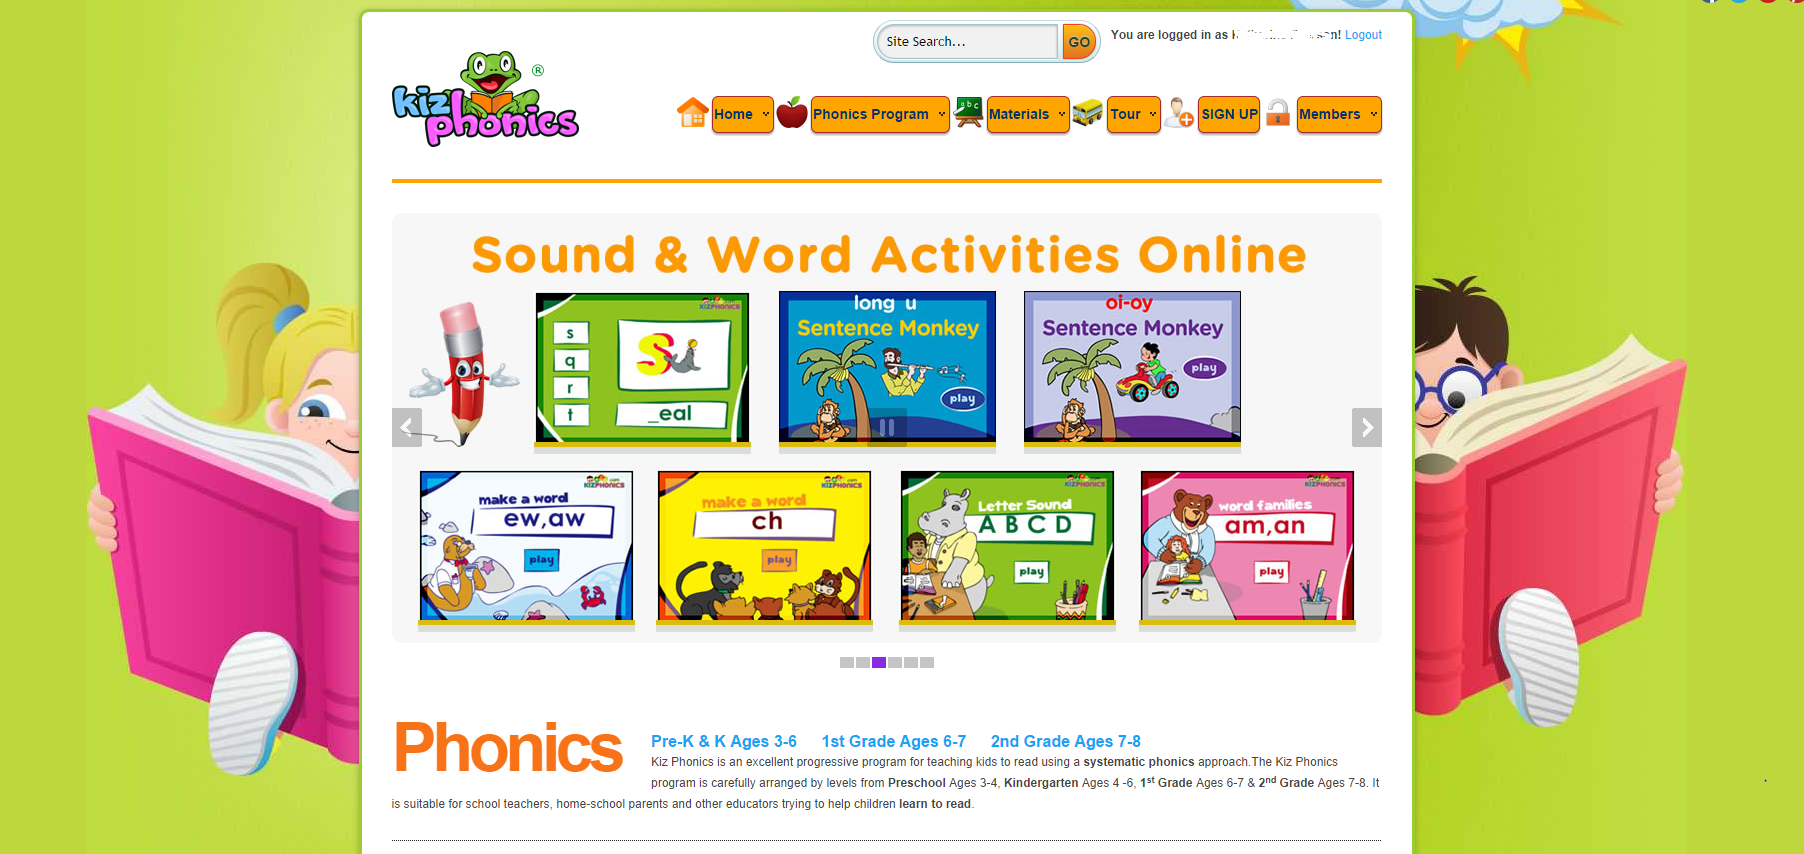 Worksheet Online Phonics Programs kizphonics teachezwell blog if you are uncertain about a scope and sequence for teaching phonics this site is the lessons materials leveled by grade pre kindergarten